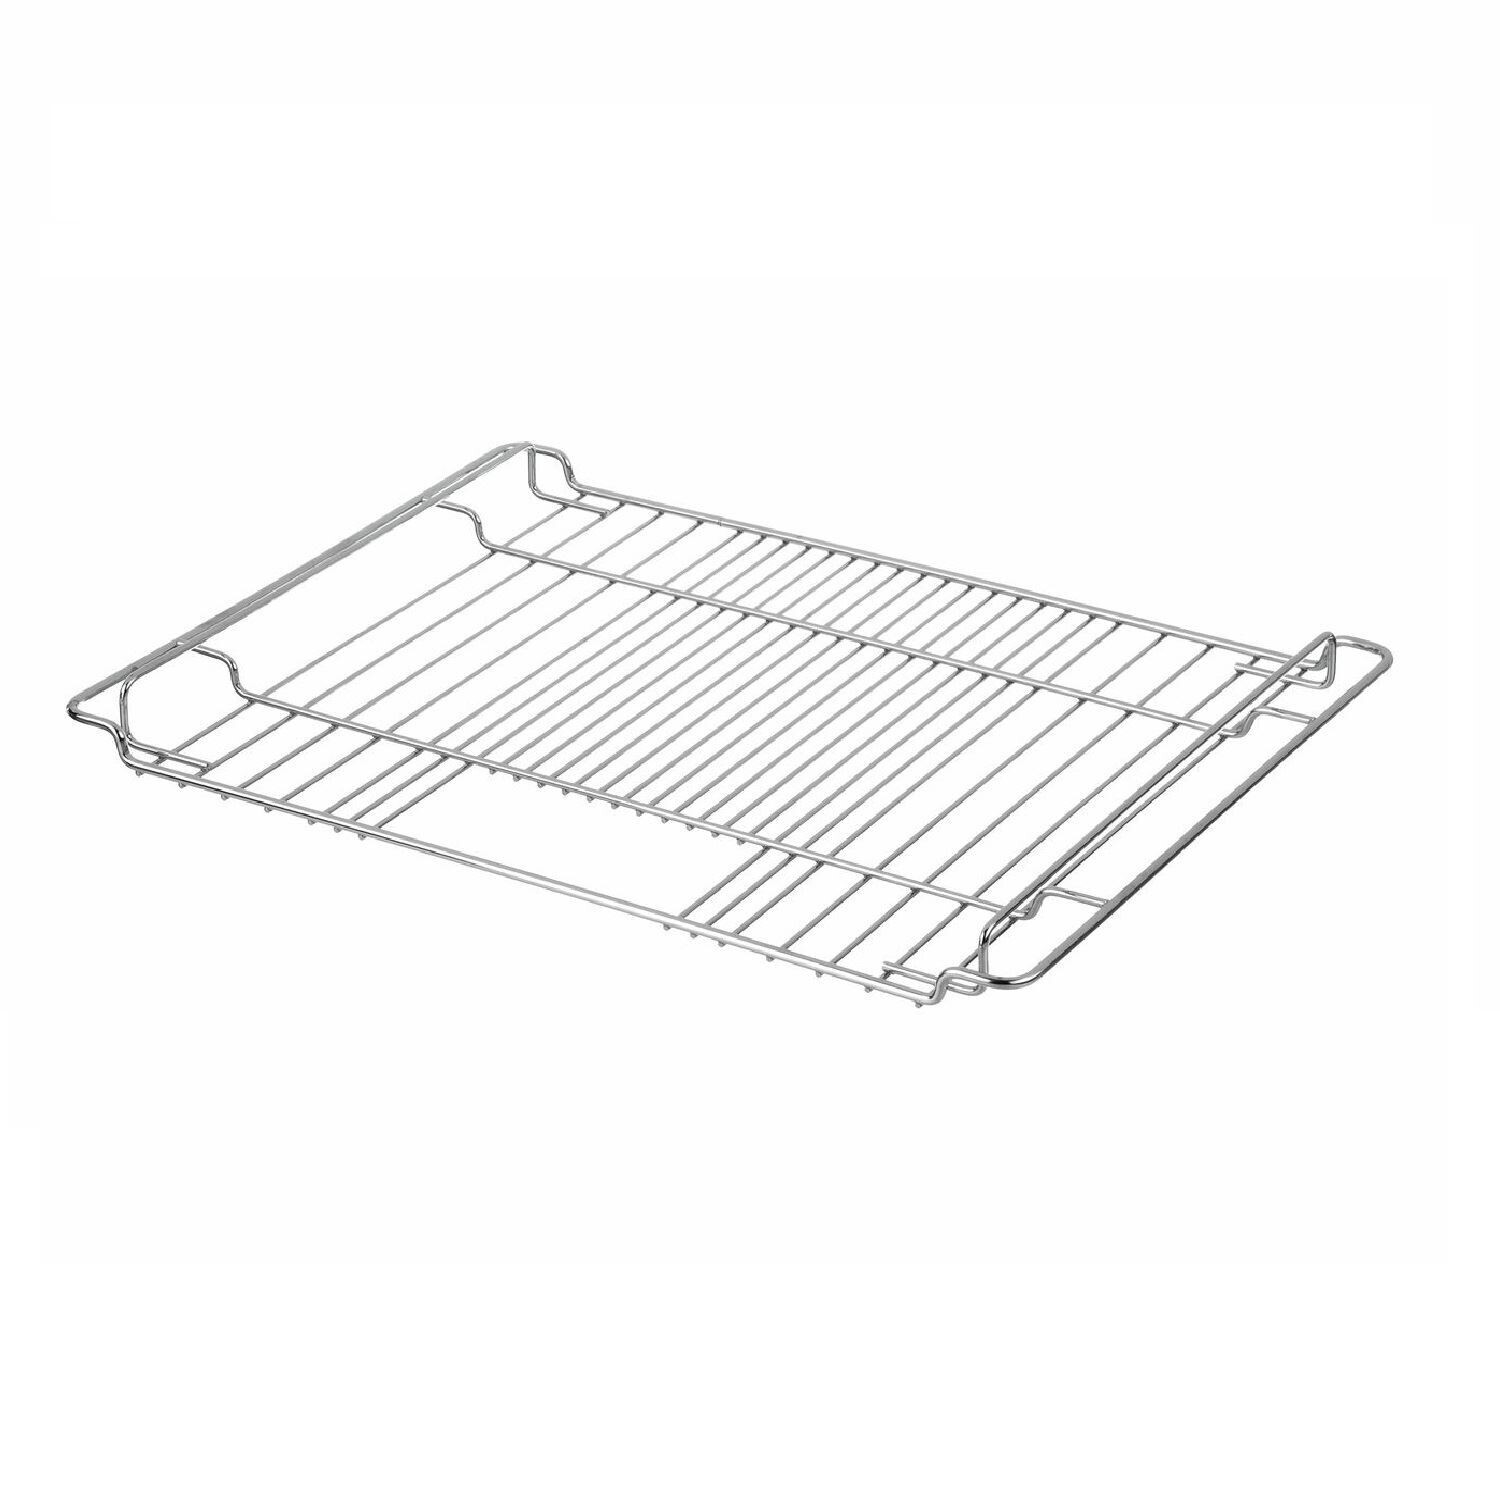 Neff Cooker Oven Grill Pan Grid Wire Shelf Rack